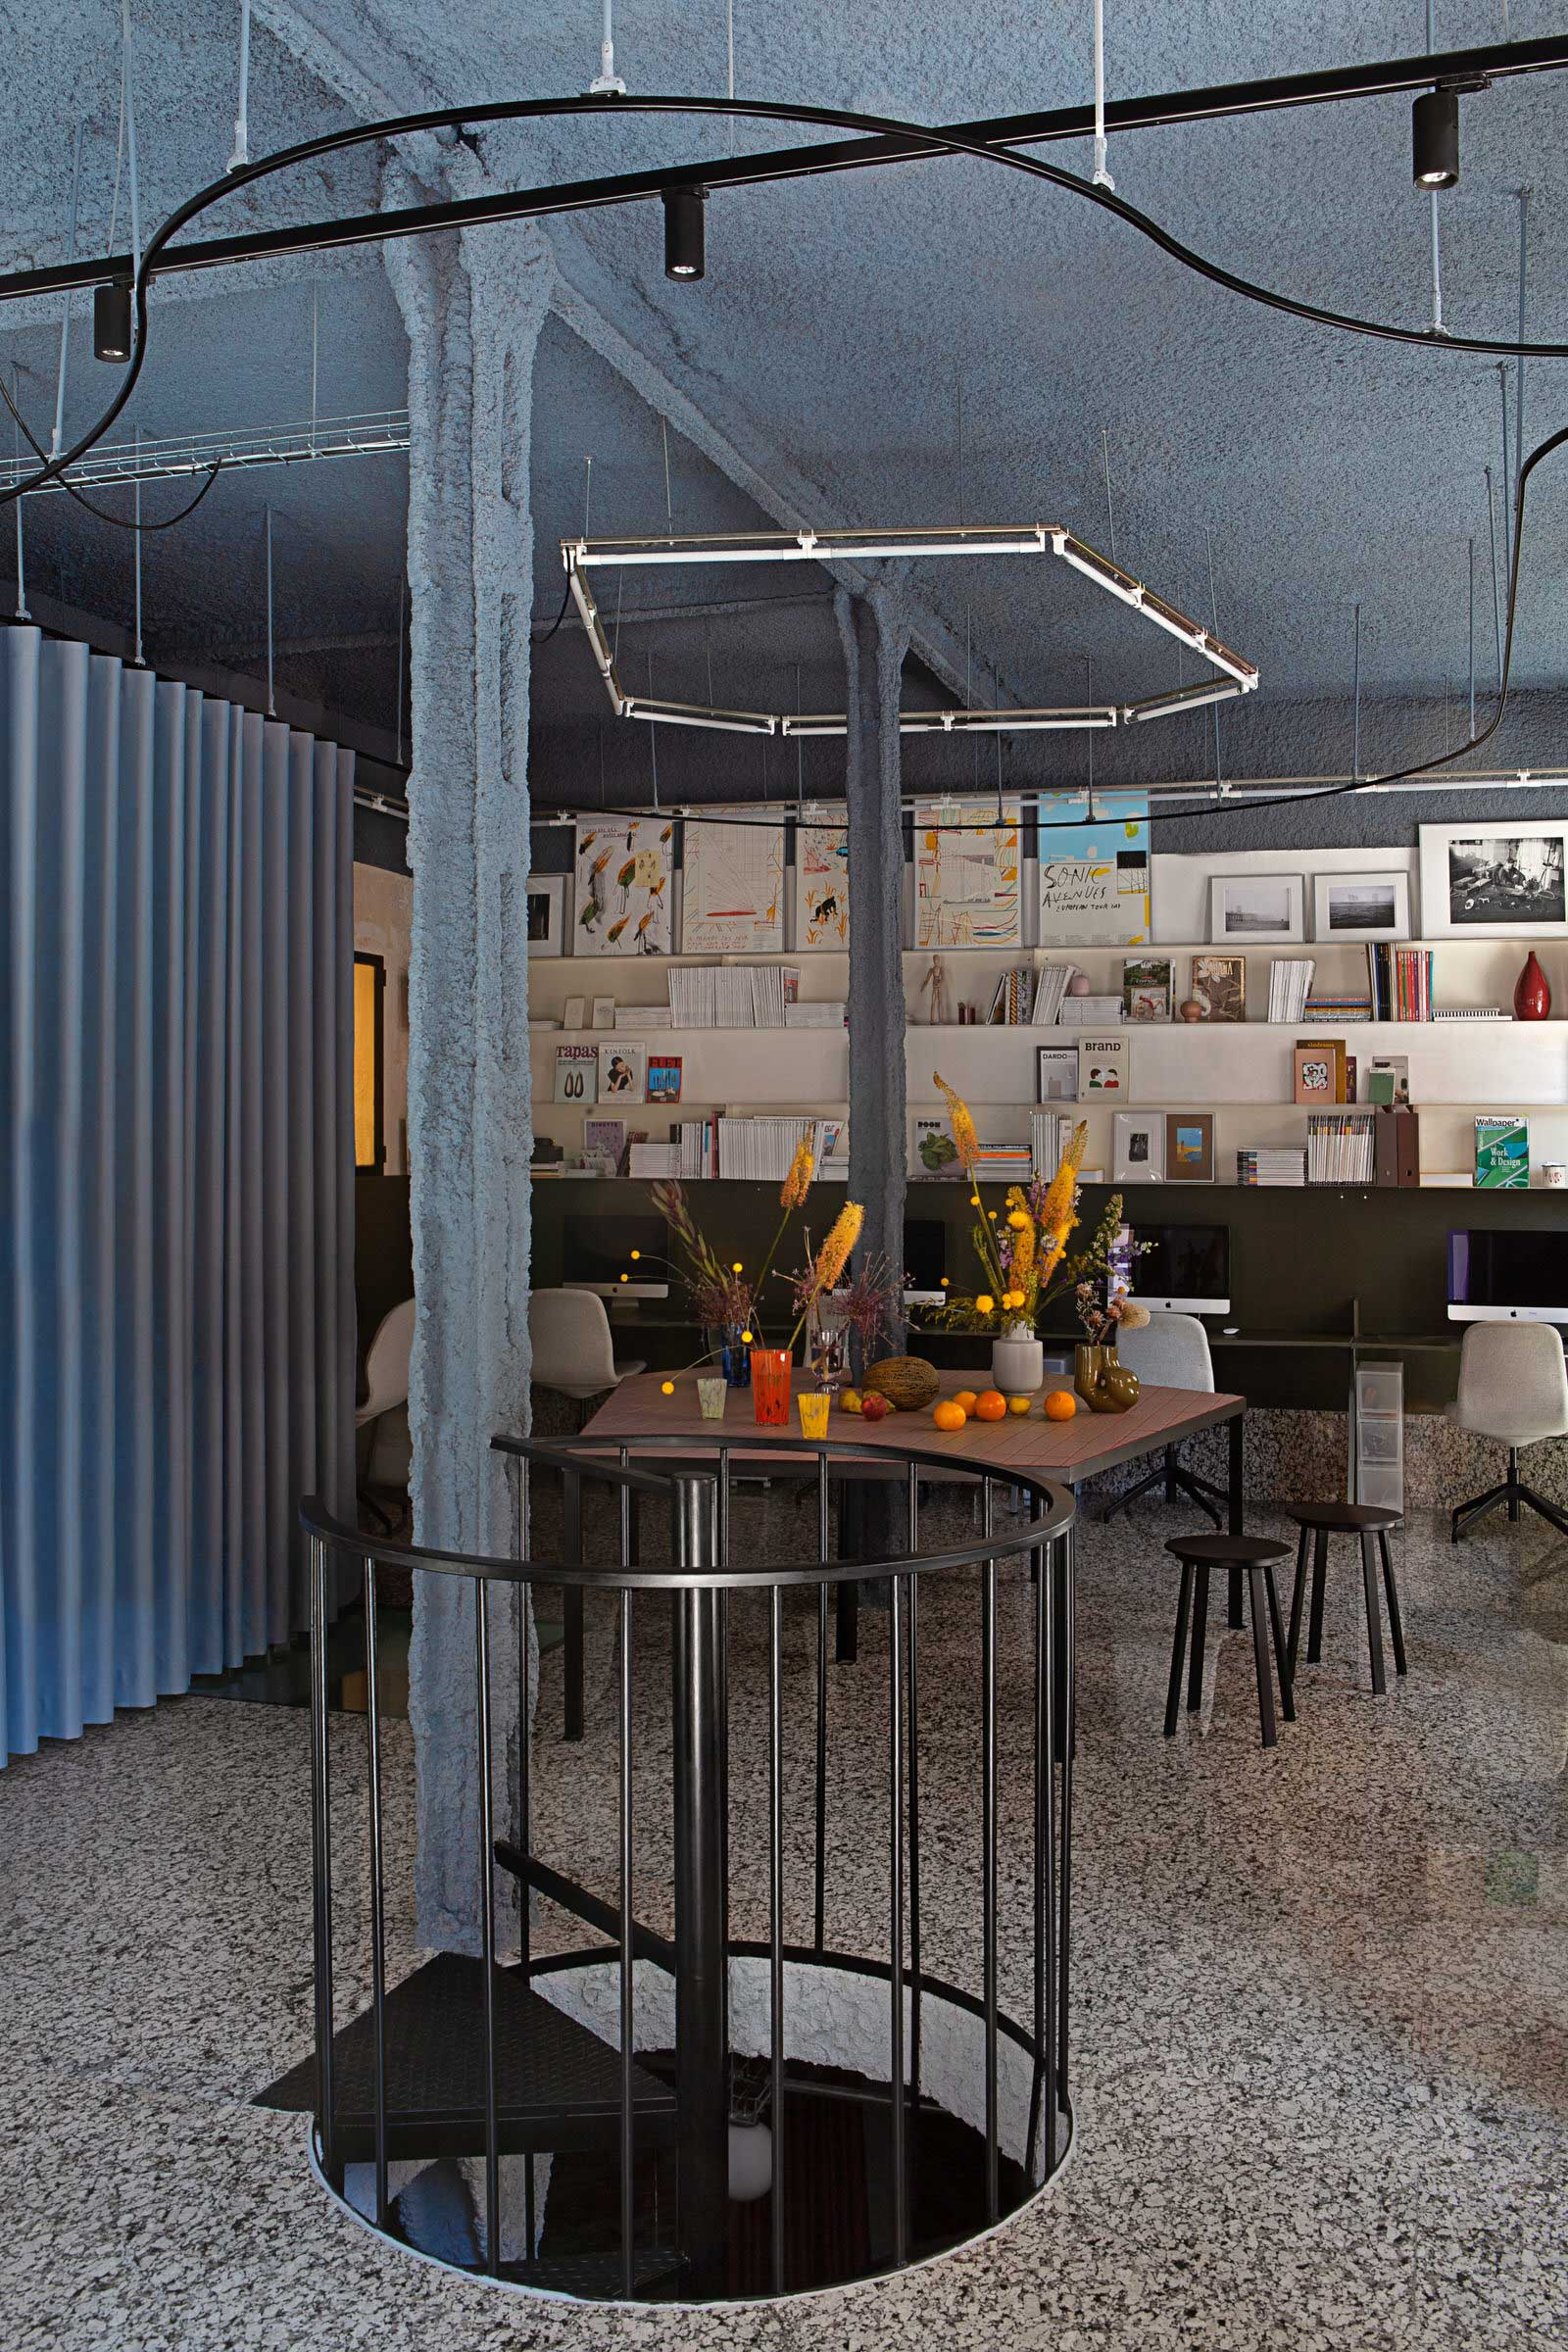 Plutarco Design Office Madrid Hecho Store Photo Asier Rua Yellowtrace 11